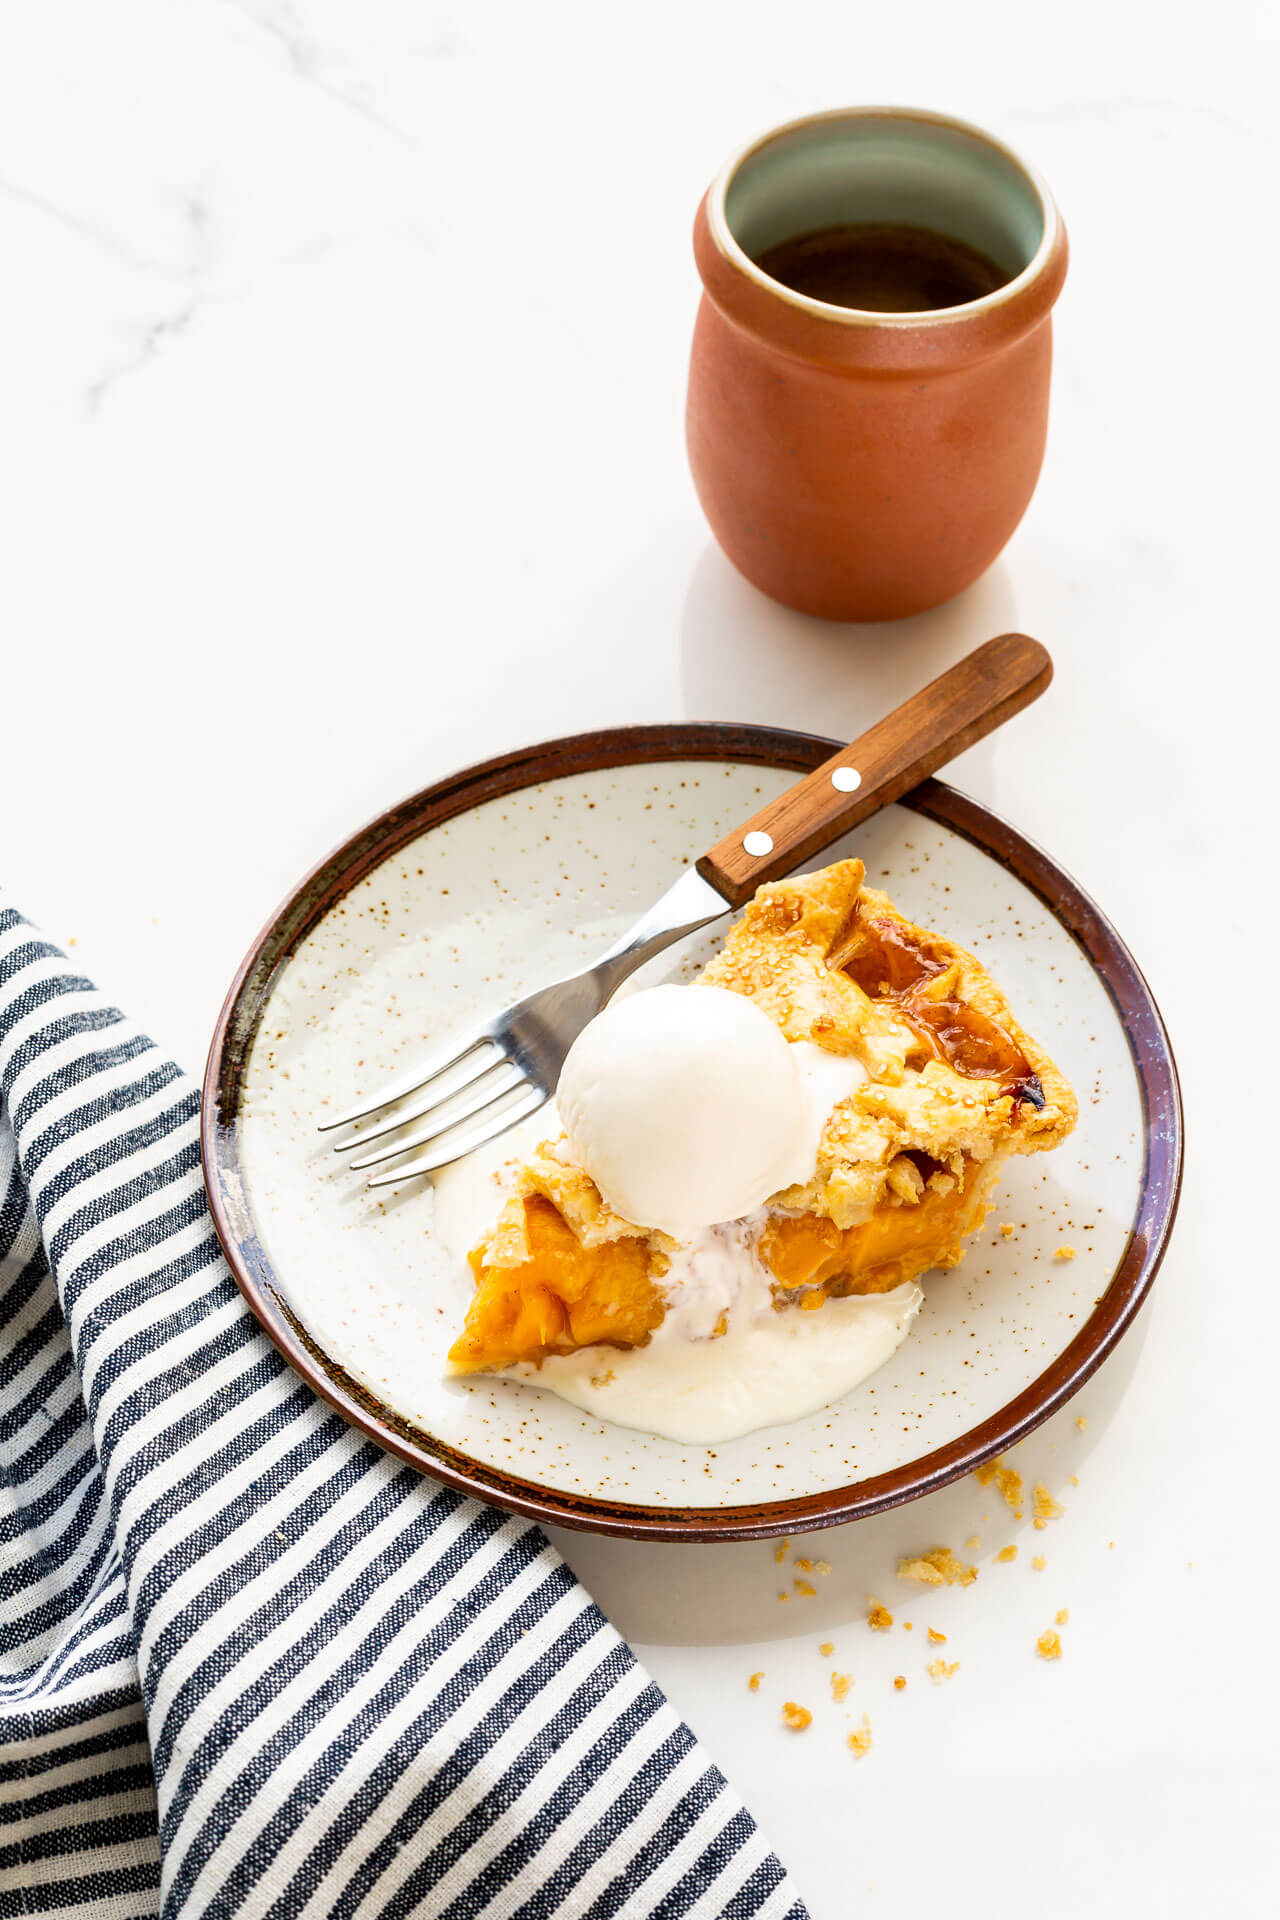 A slice of peach mango pie served à la mode with vanilla ice cream on a ceramic plate with a wood-handled fork and a cup of coffee, blue white striped linen